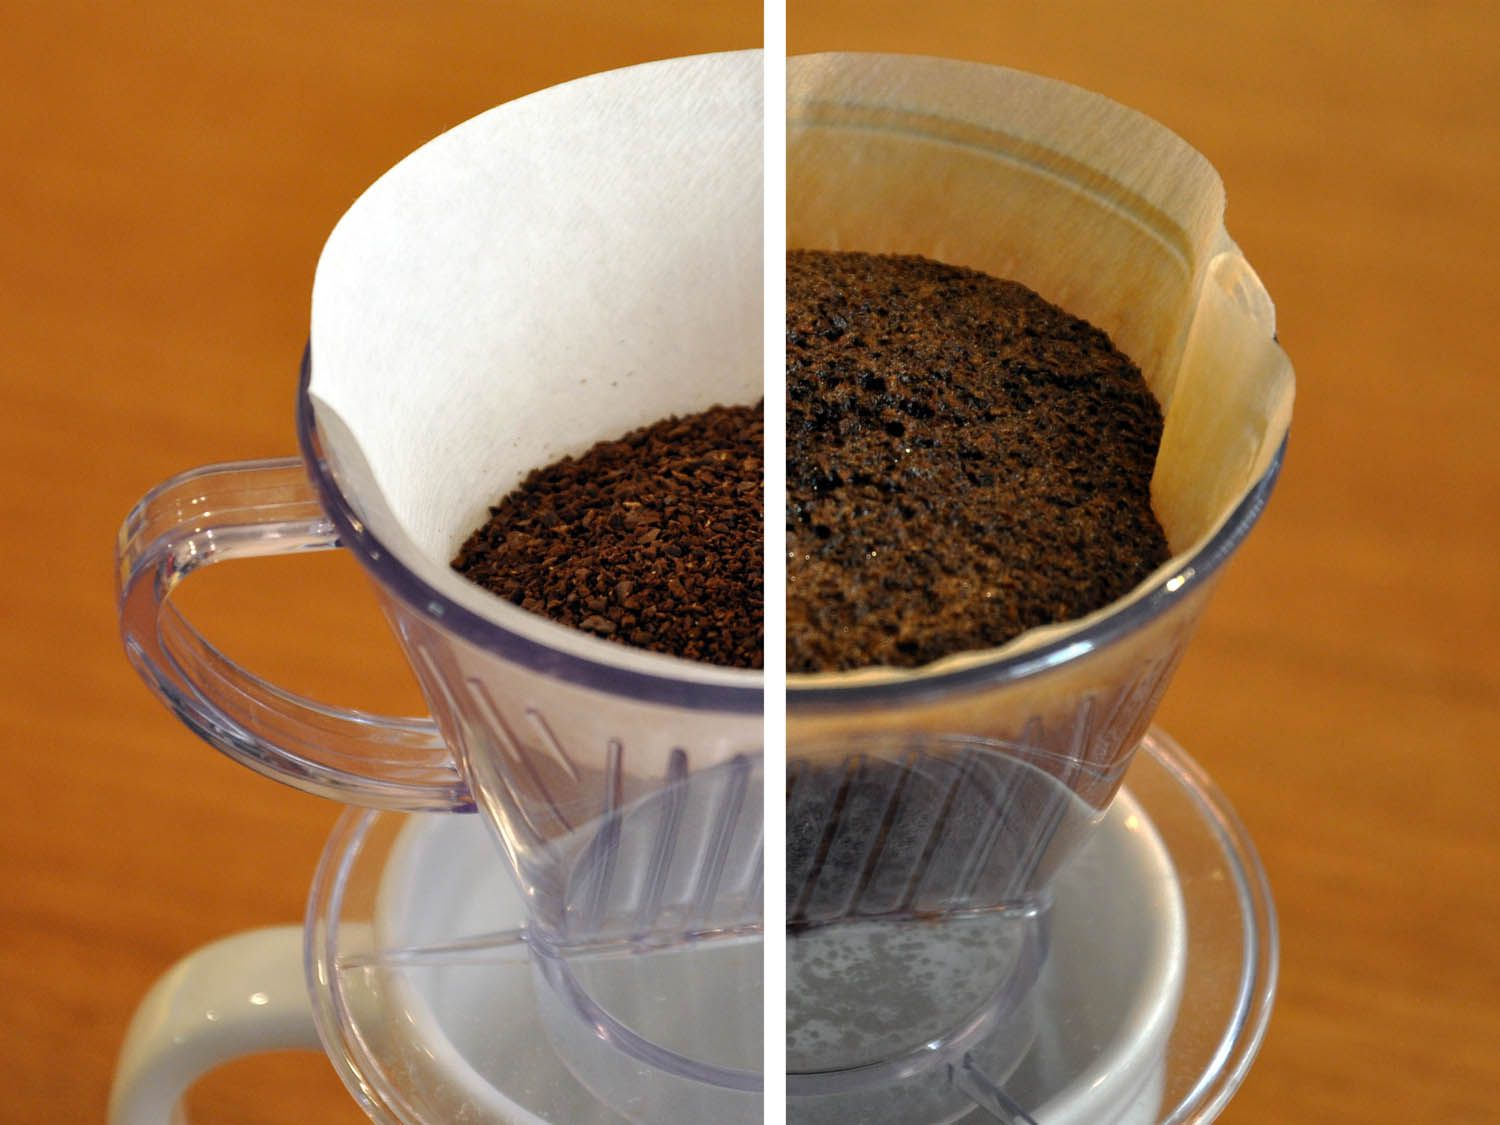 20140619-pourover-wetting.jpg